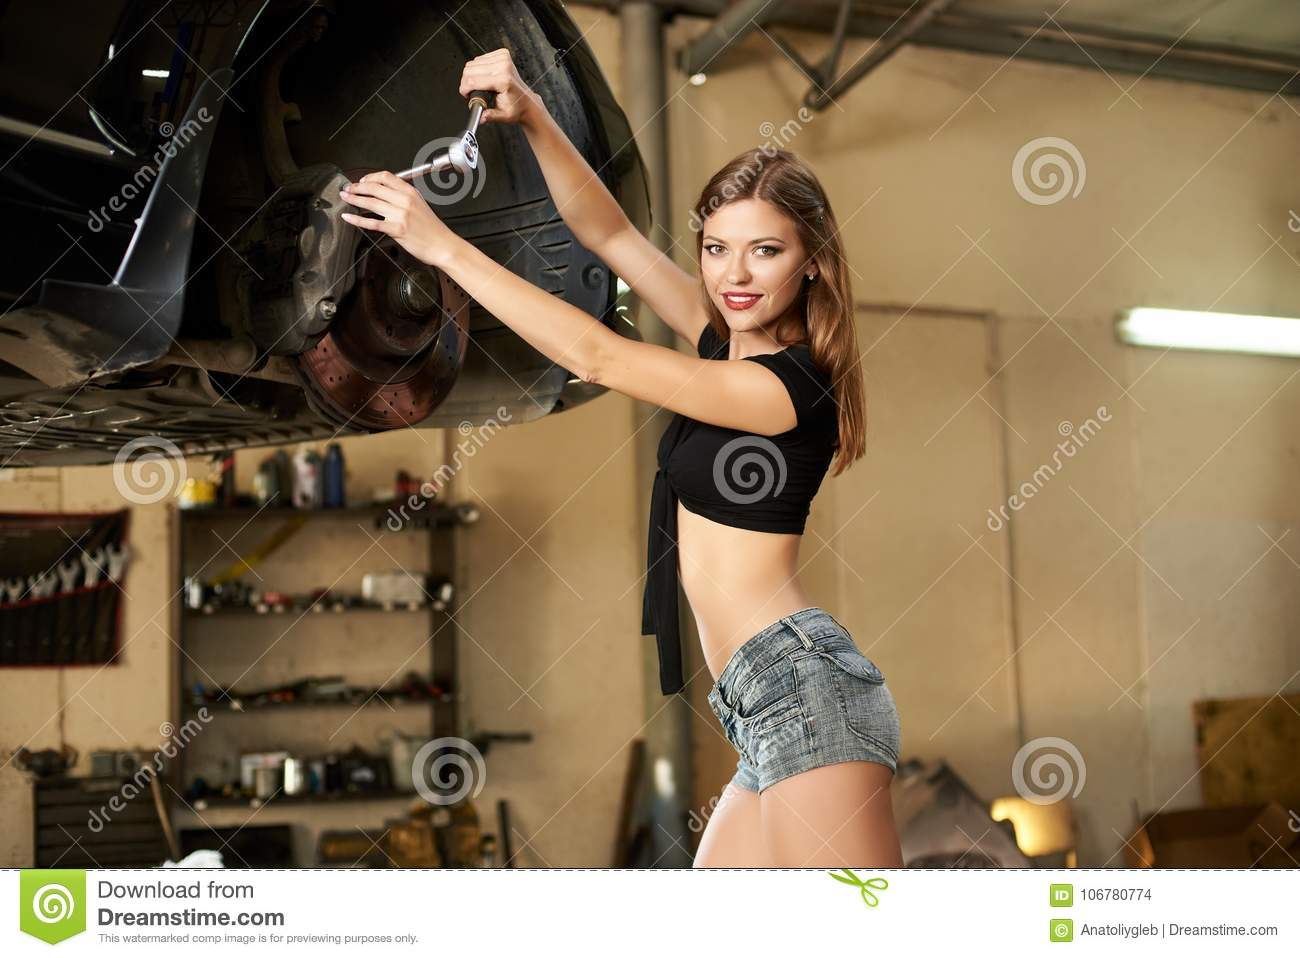 Model poses with socket wrench near car on hydraulic lift